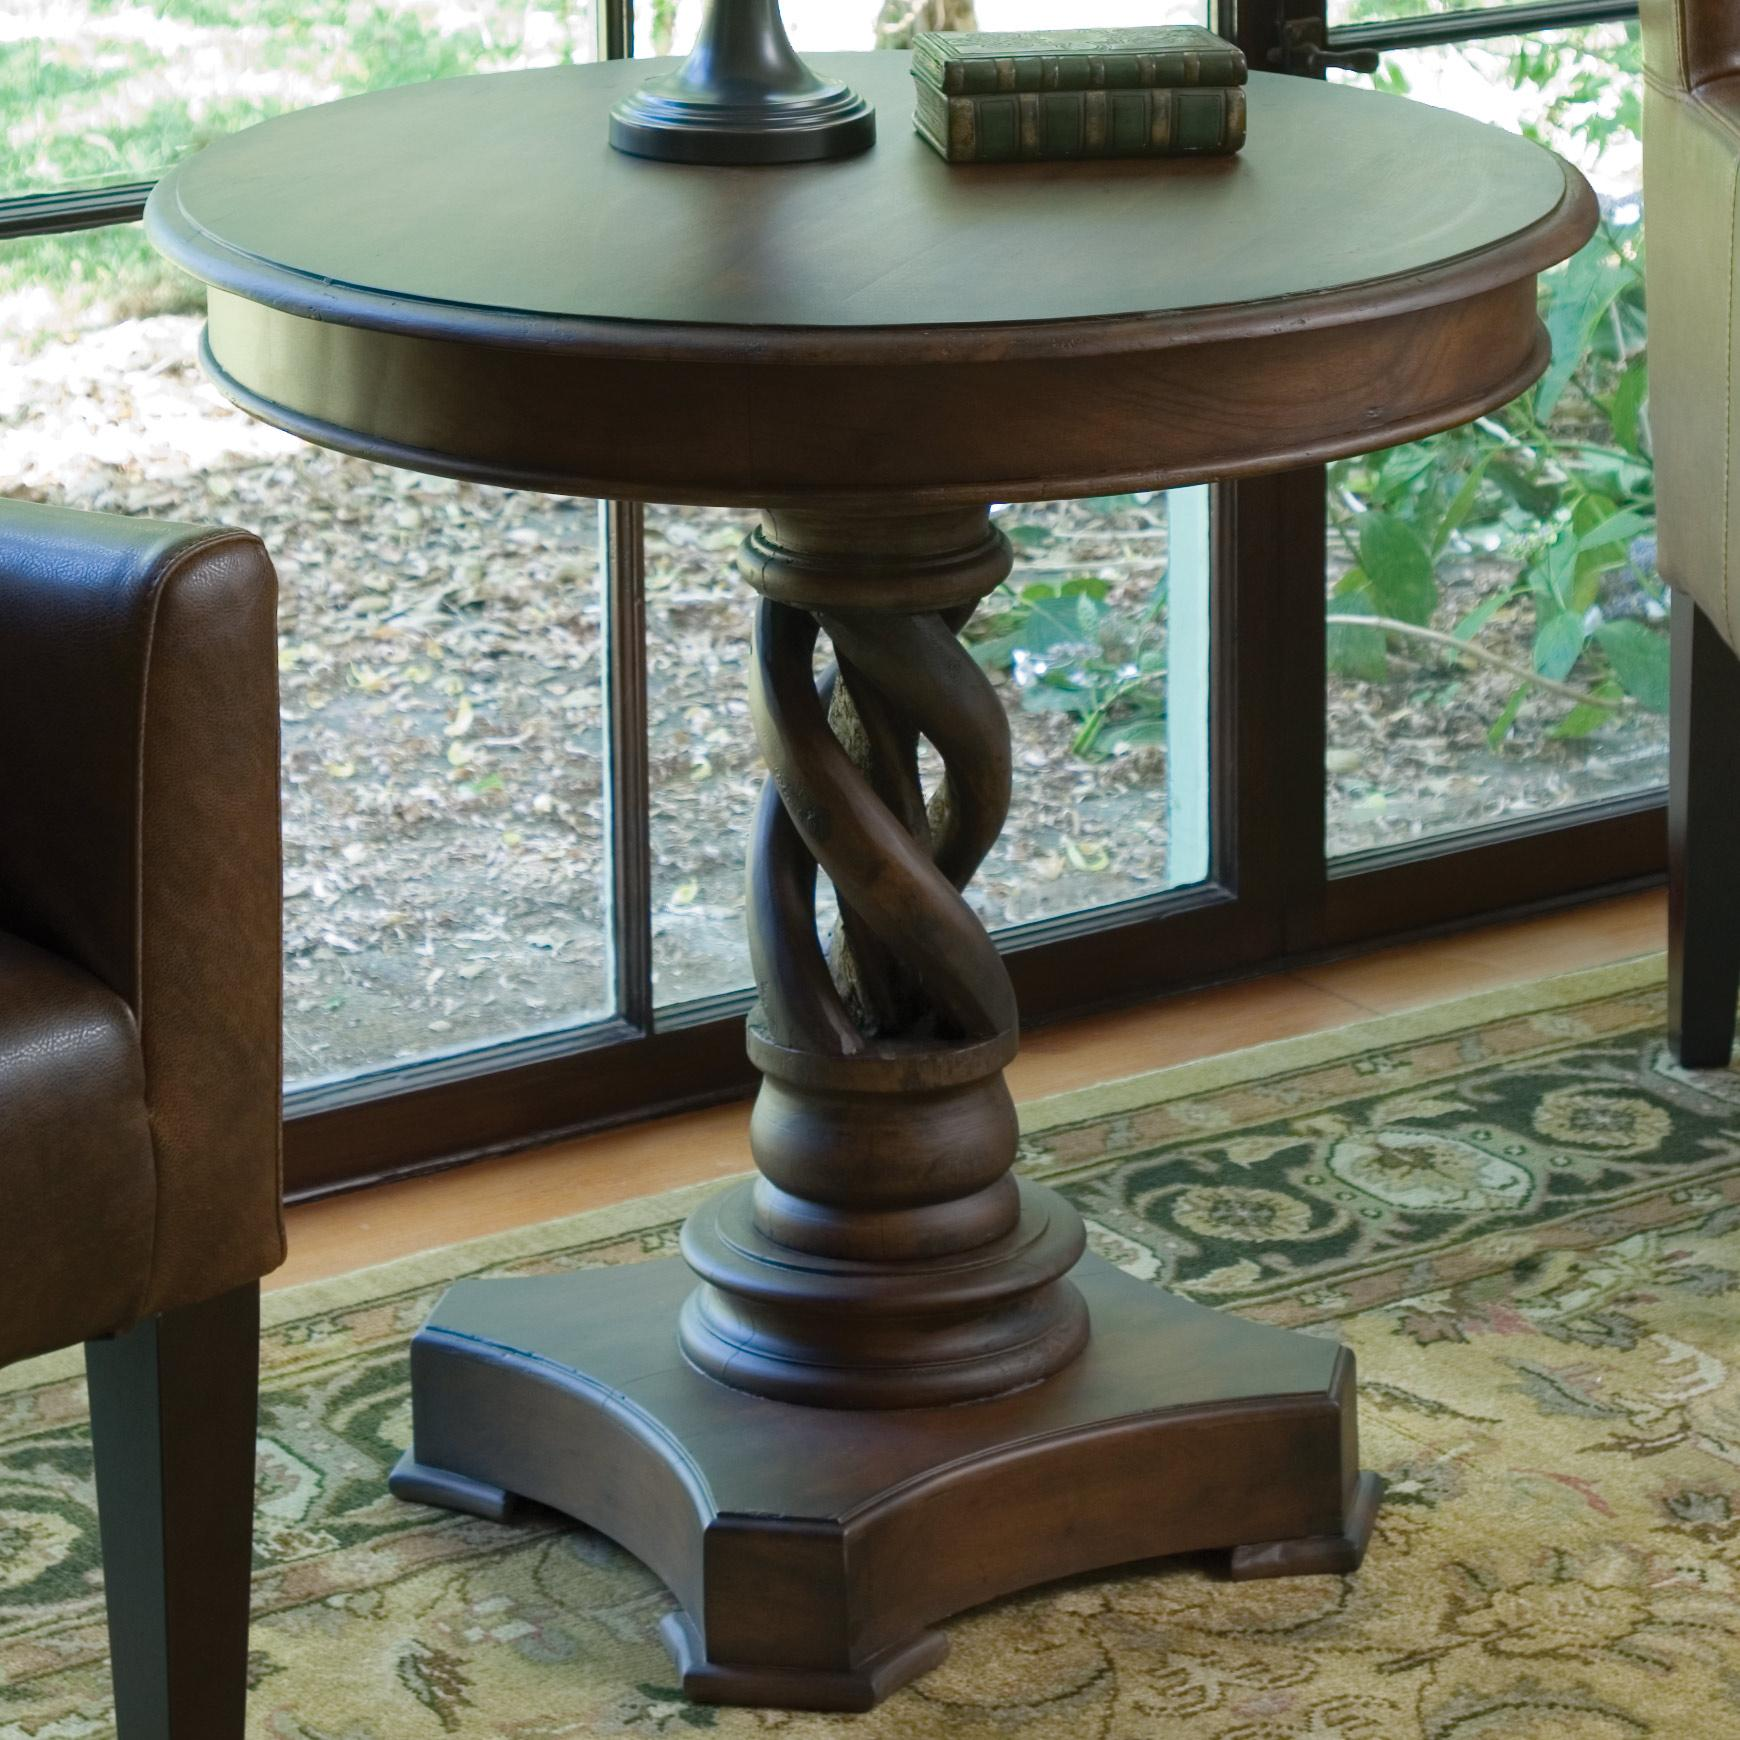 Classic home accent furniture 30 isabella round end table for Classic home furniture jacksonville fl